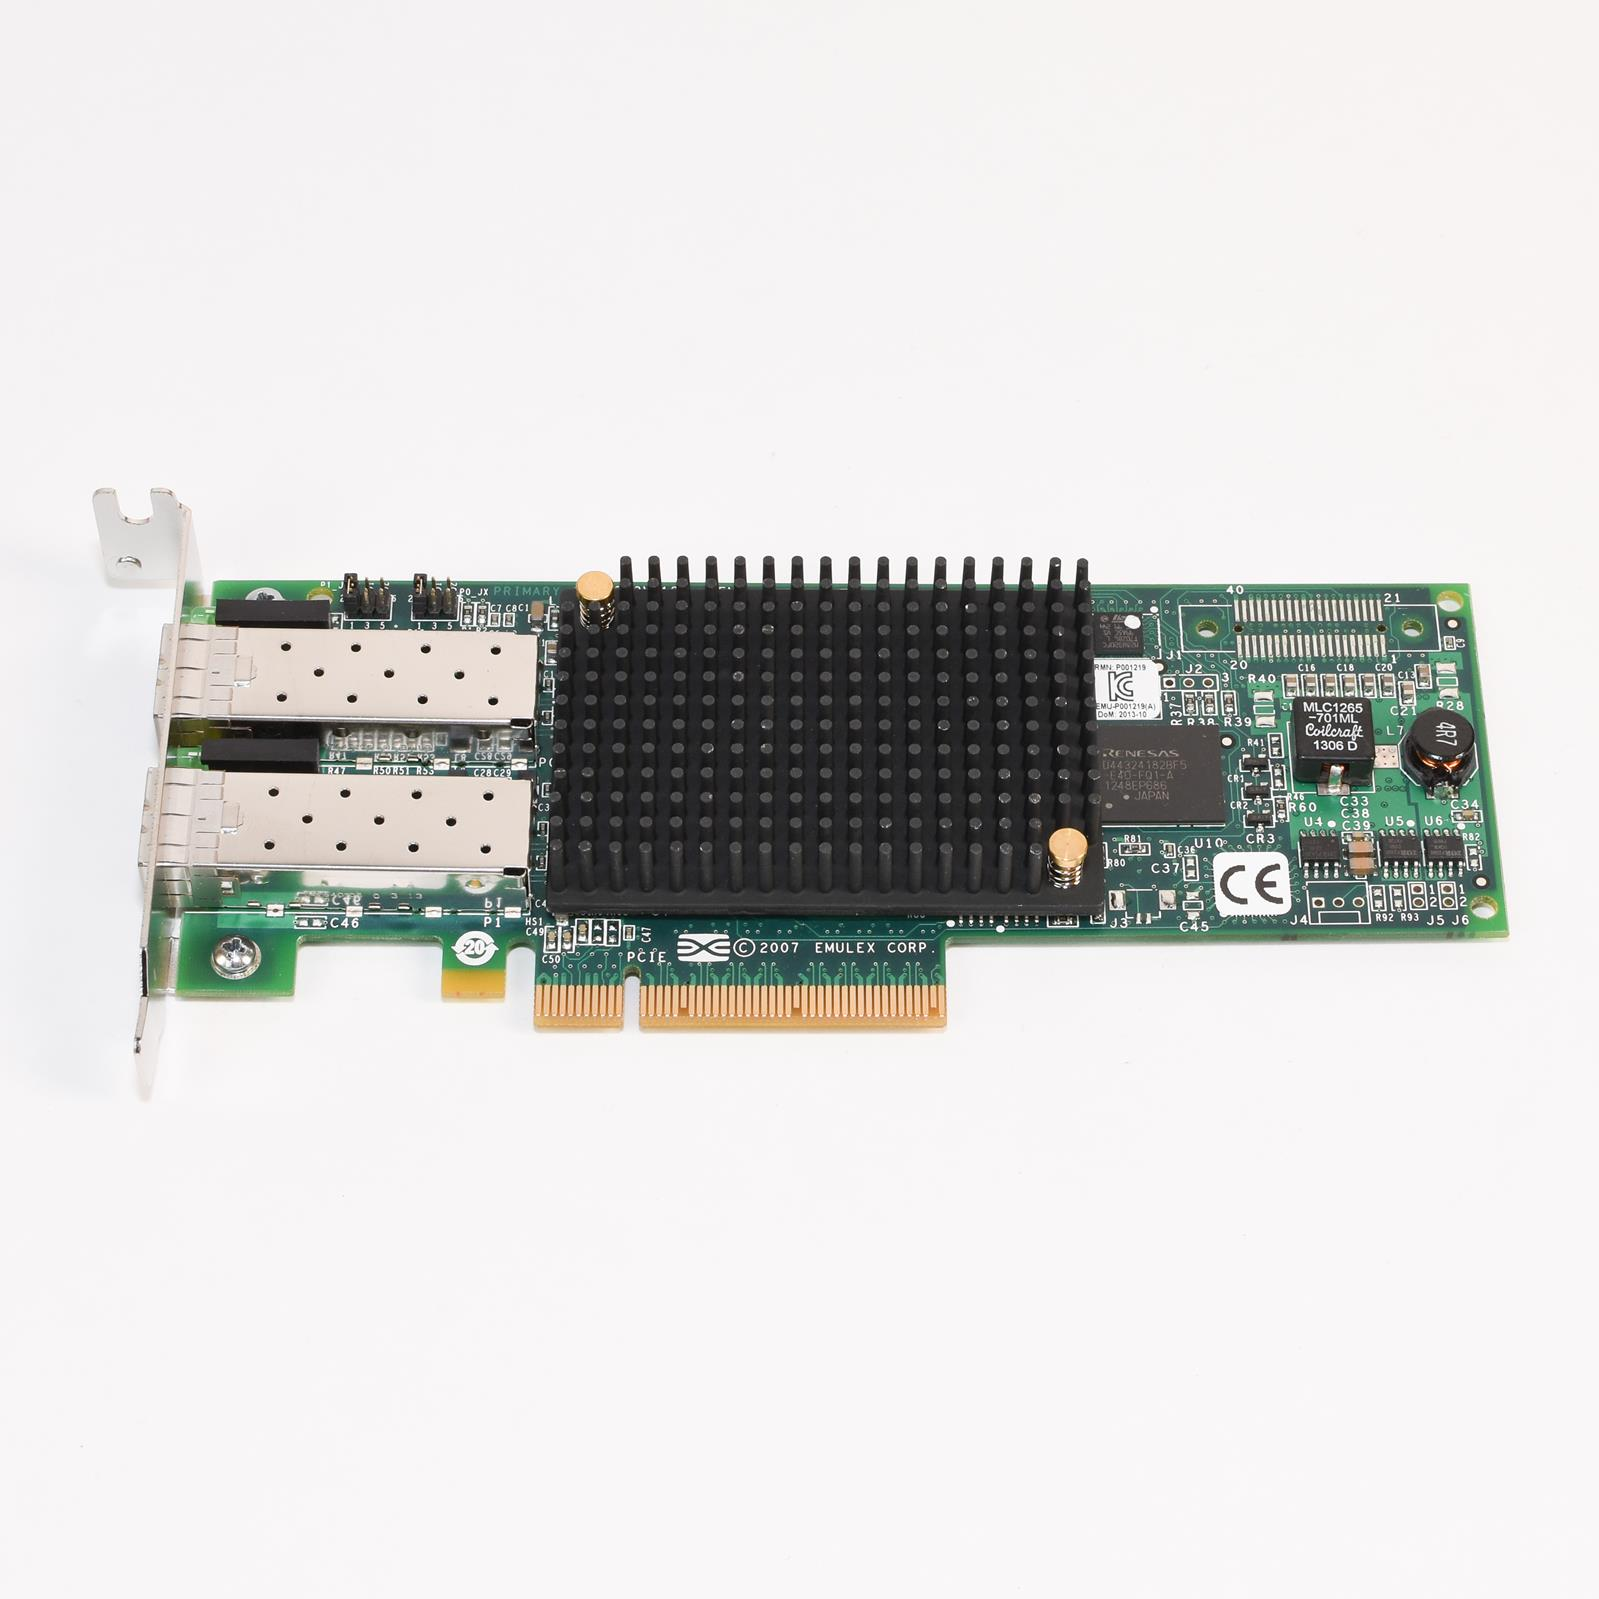 Emulex IBM 42D0500 LPE12002 8GB FC HBA 2 Port PCIe HP Dell Adapter Card High Pro